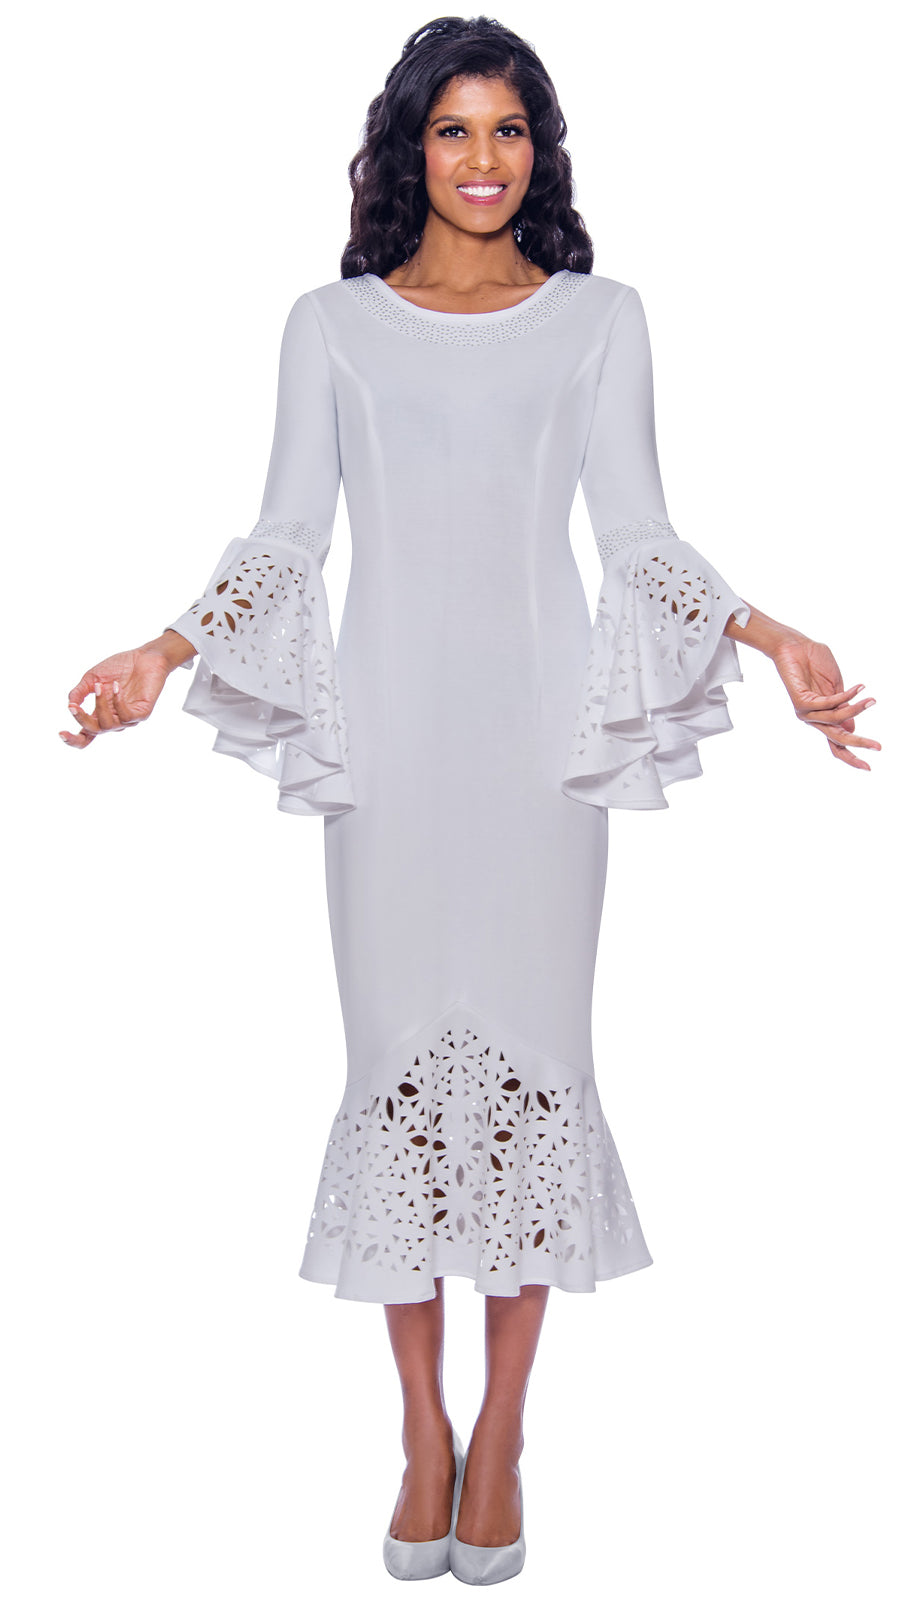 Dress By Nubiano 2761-White - Church Suits For Less